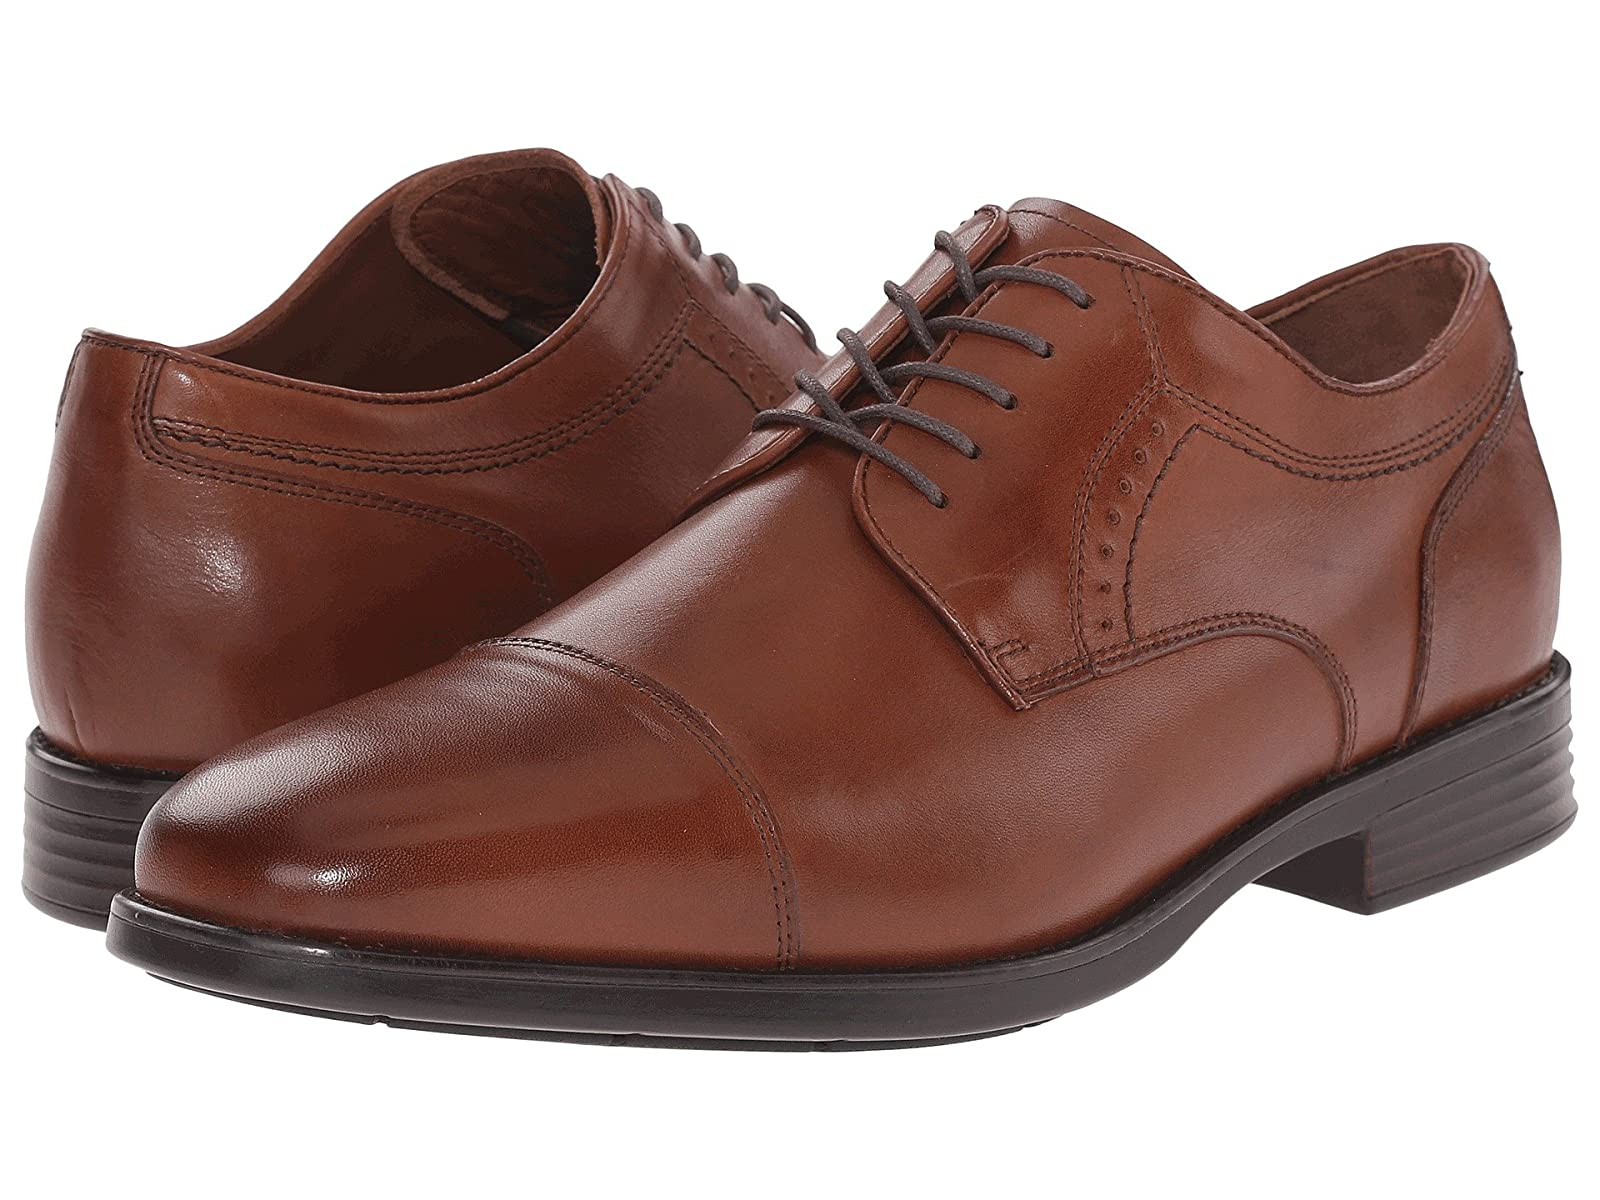 Johnston & Murphy Waterproof XC4 Branning Cap Dress Cap Toe OxfordAtmospheric grades have affordable shoes